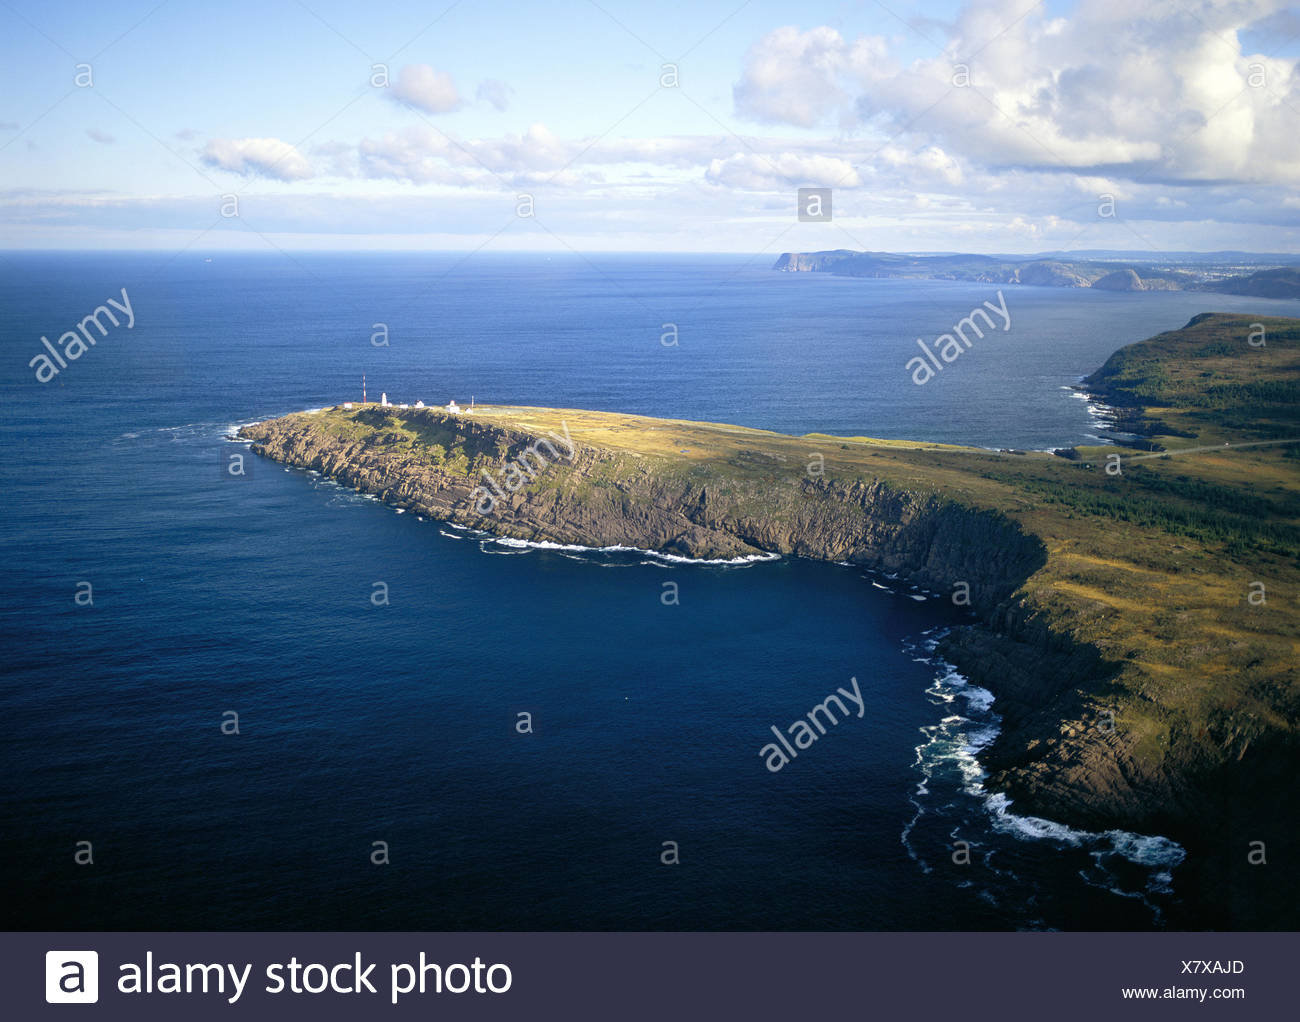 Cape Spear  easternmost point of North America, E of St John's, Newfoundland - Stock Image